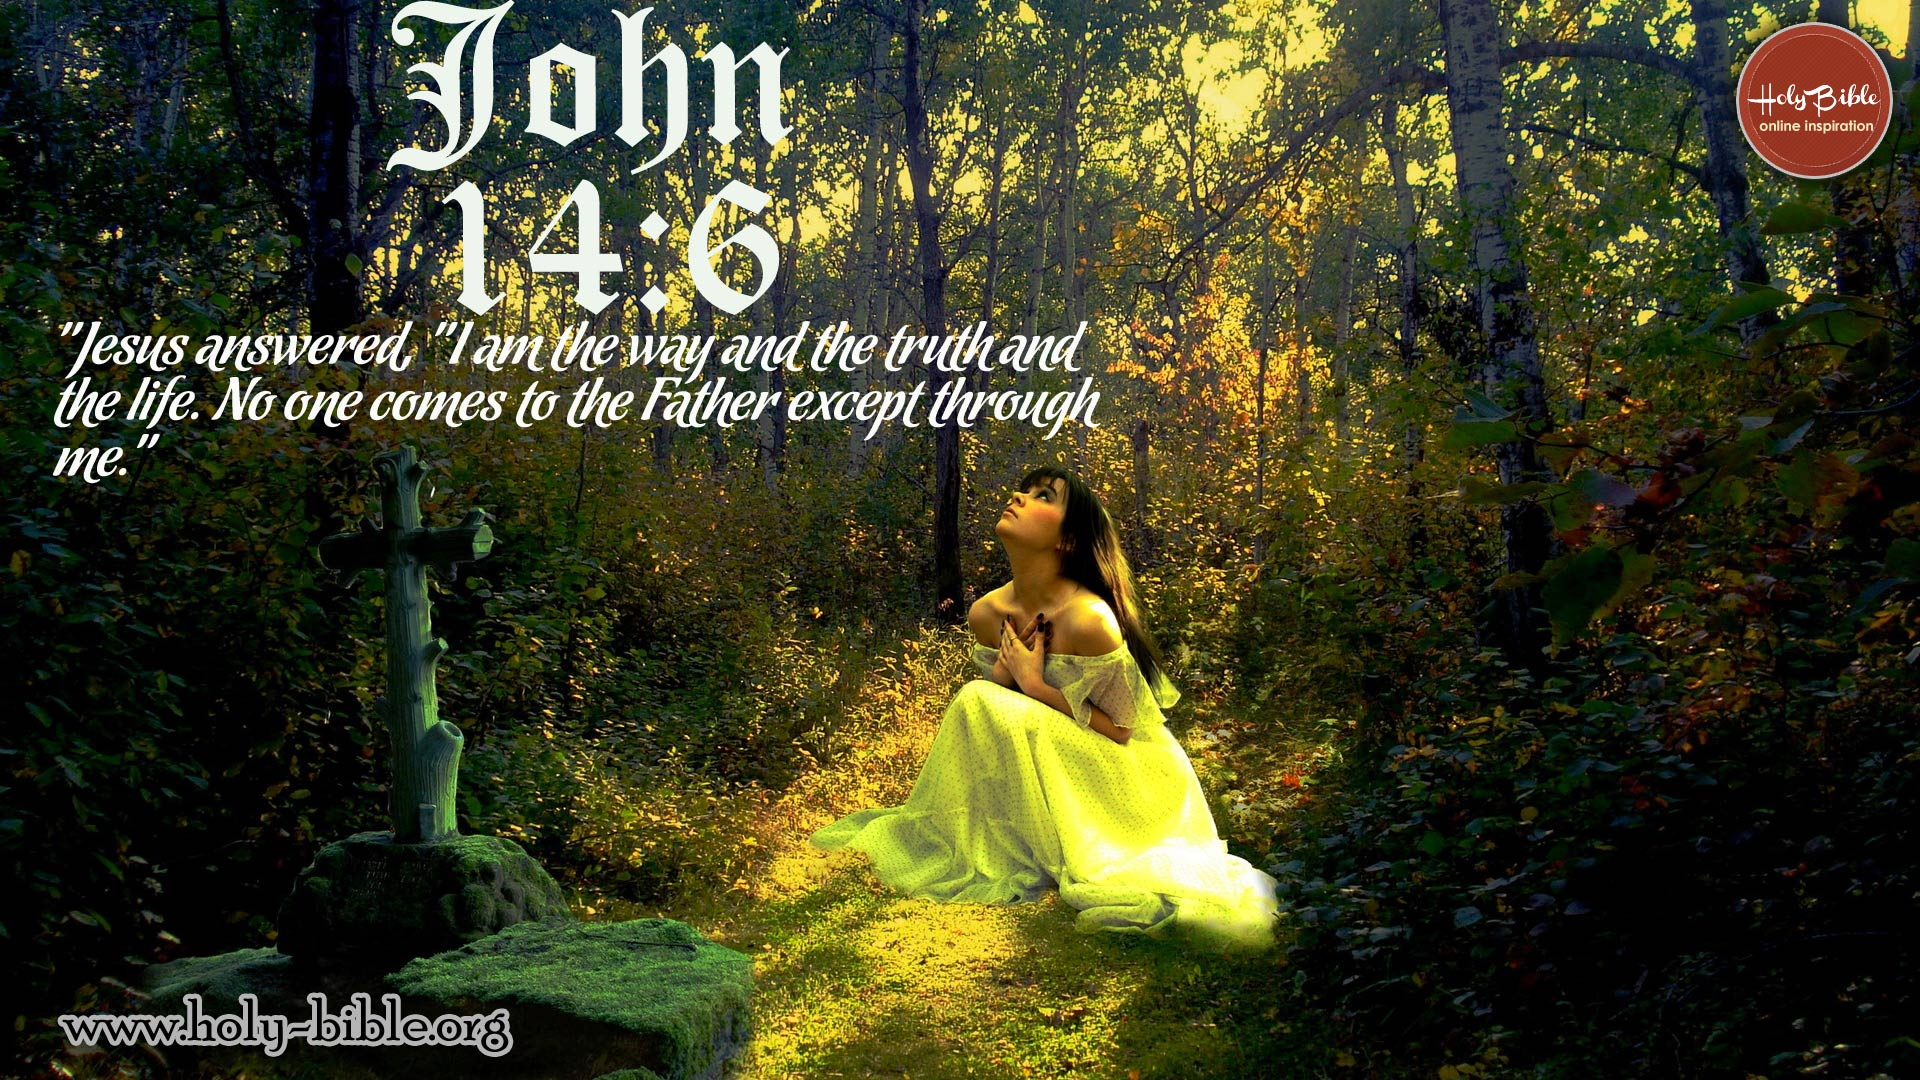 Bible Verse of the day - John 14:6